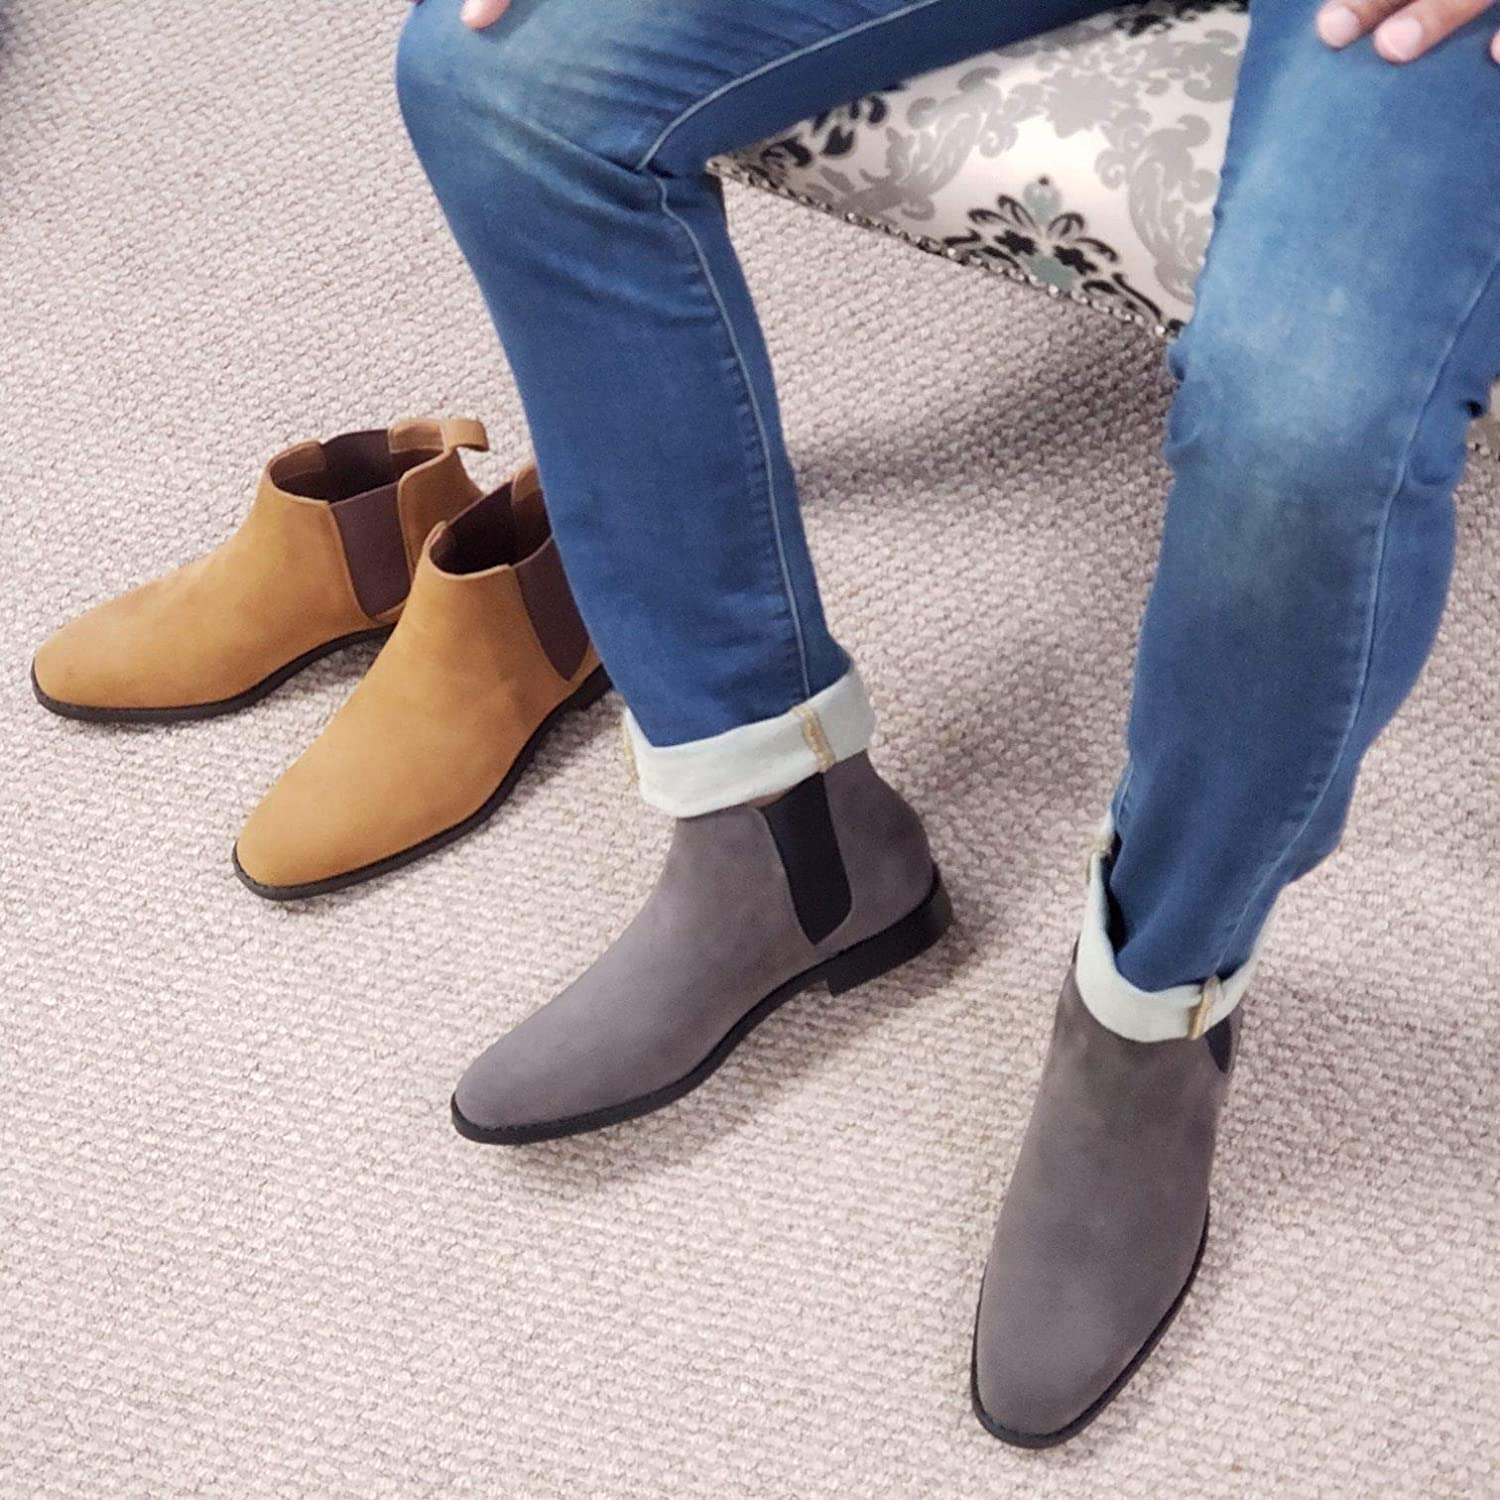 Mens B-2963 Chuck Nubuck Suede Pull-On Round Toe Chelsea Boots